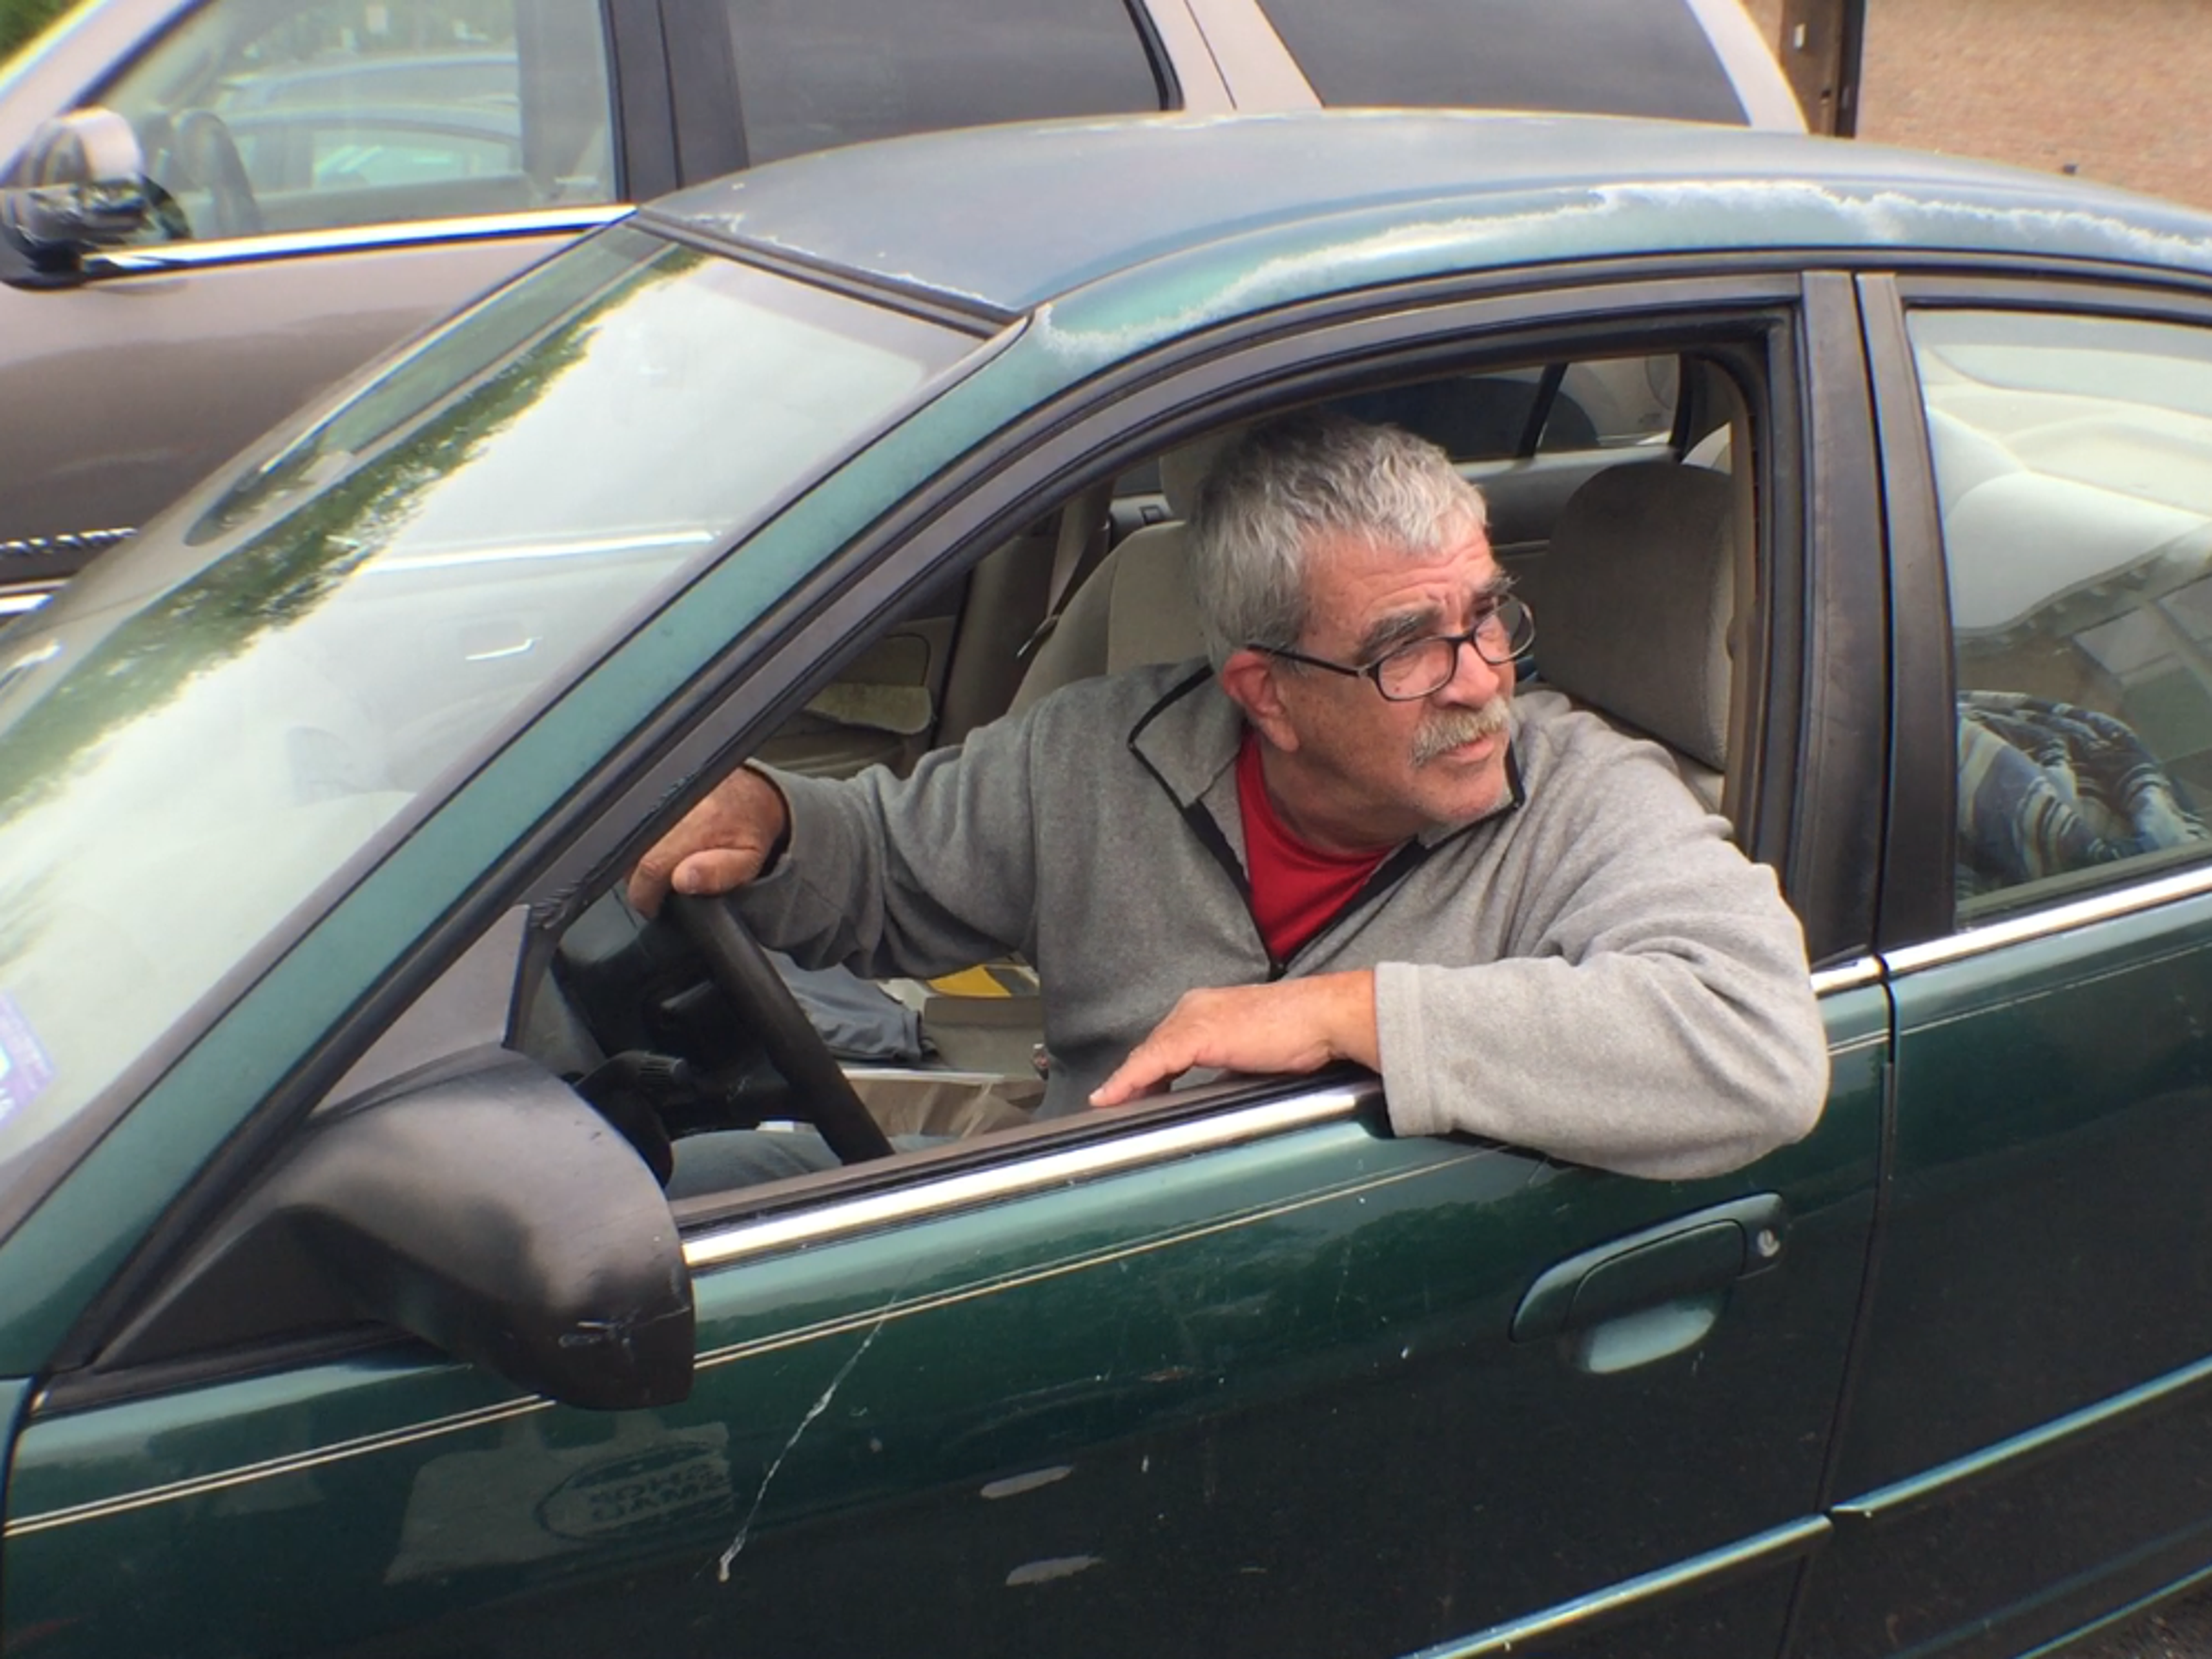 Dean Santos, who lives in his car, missed a payment